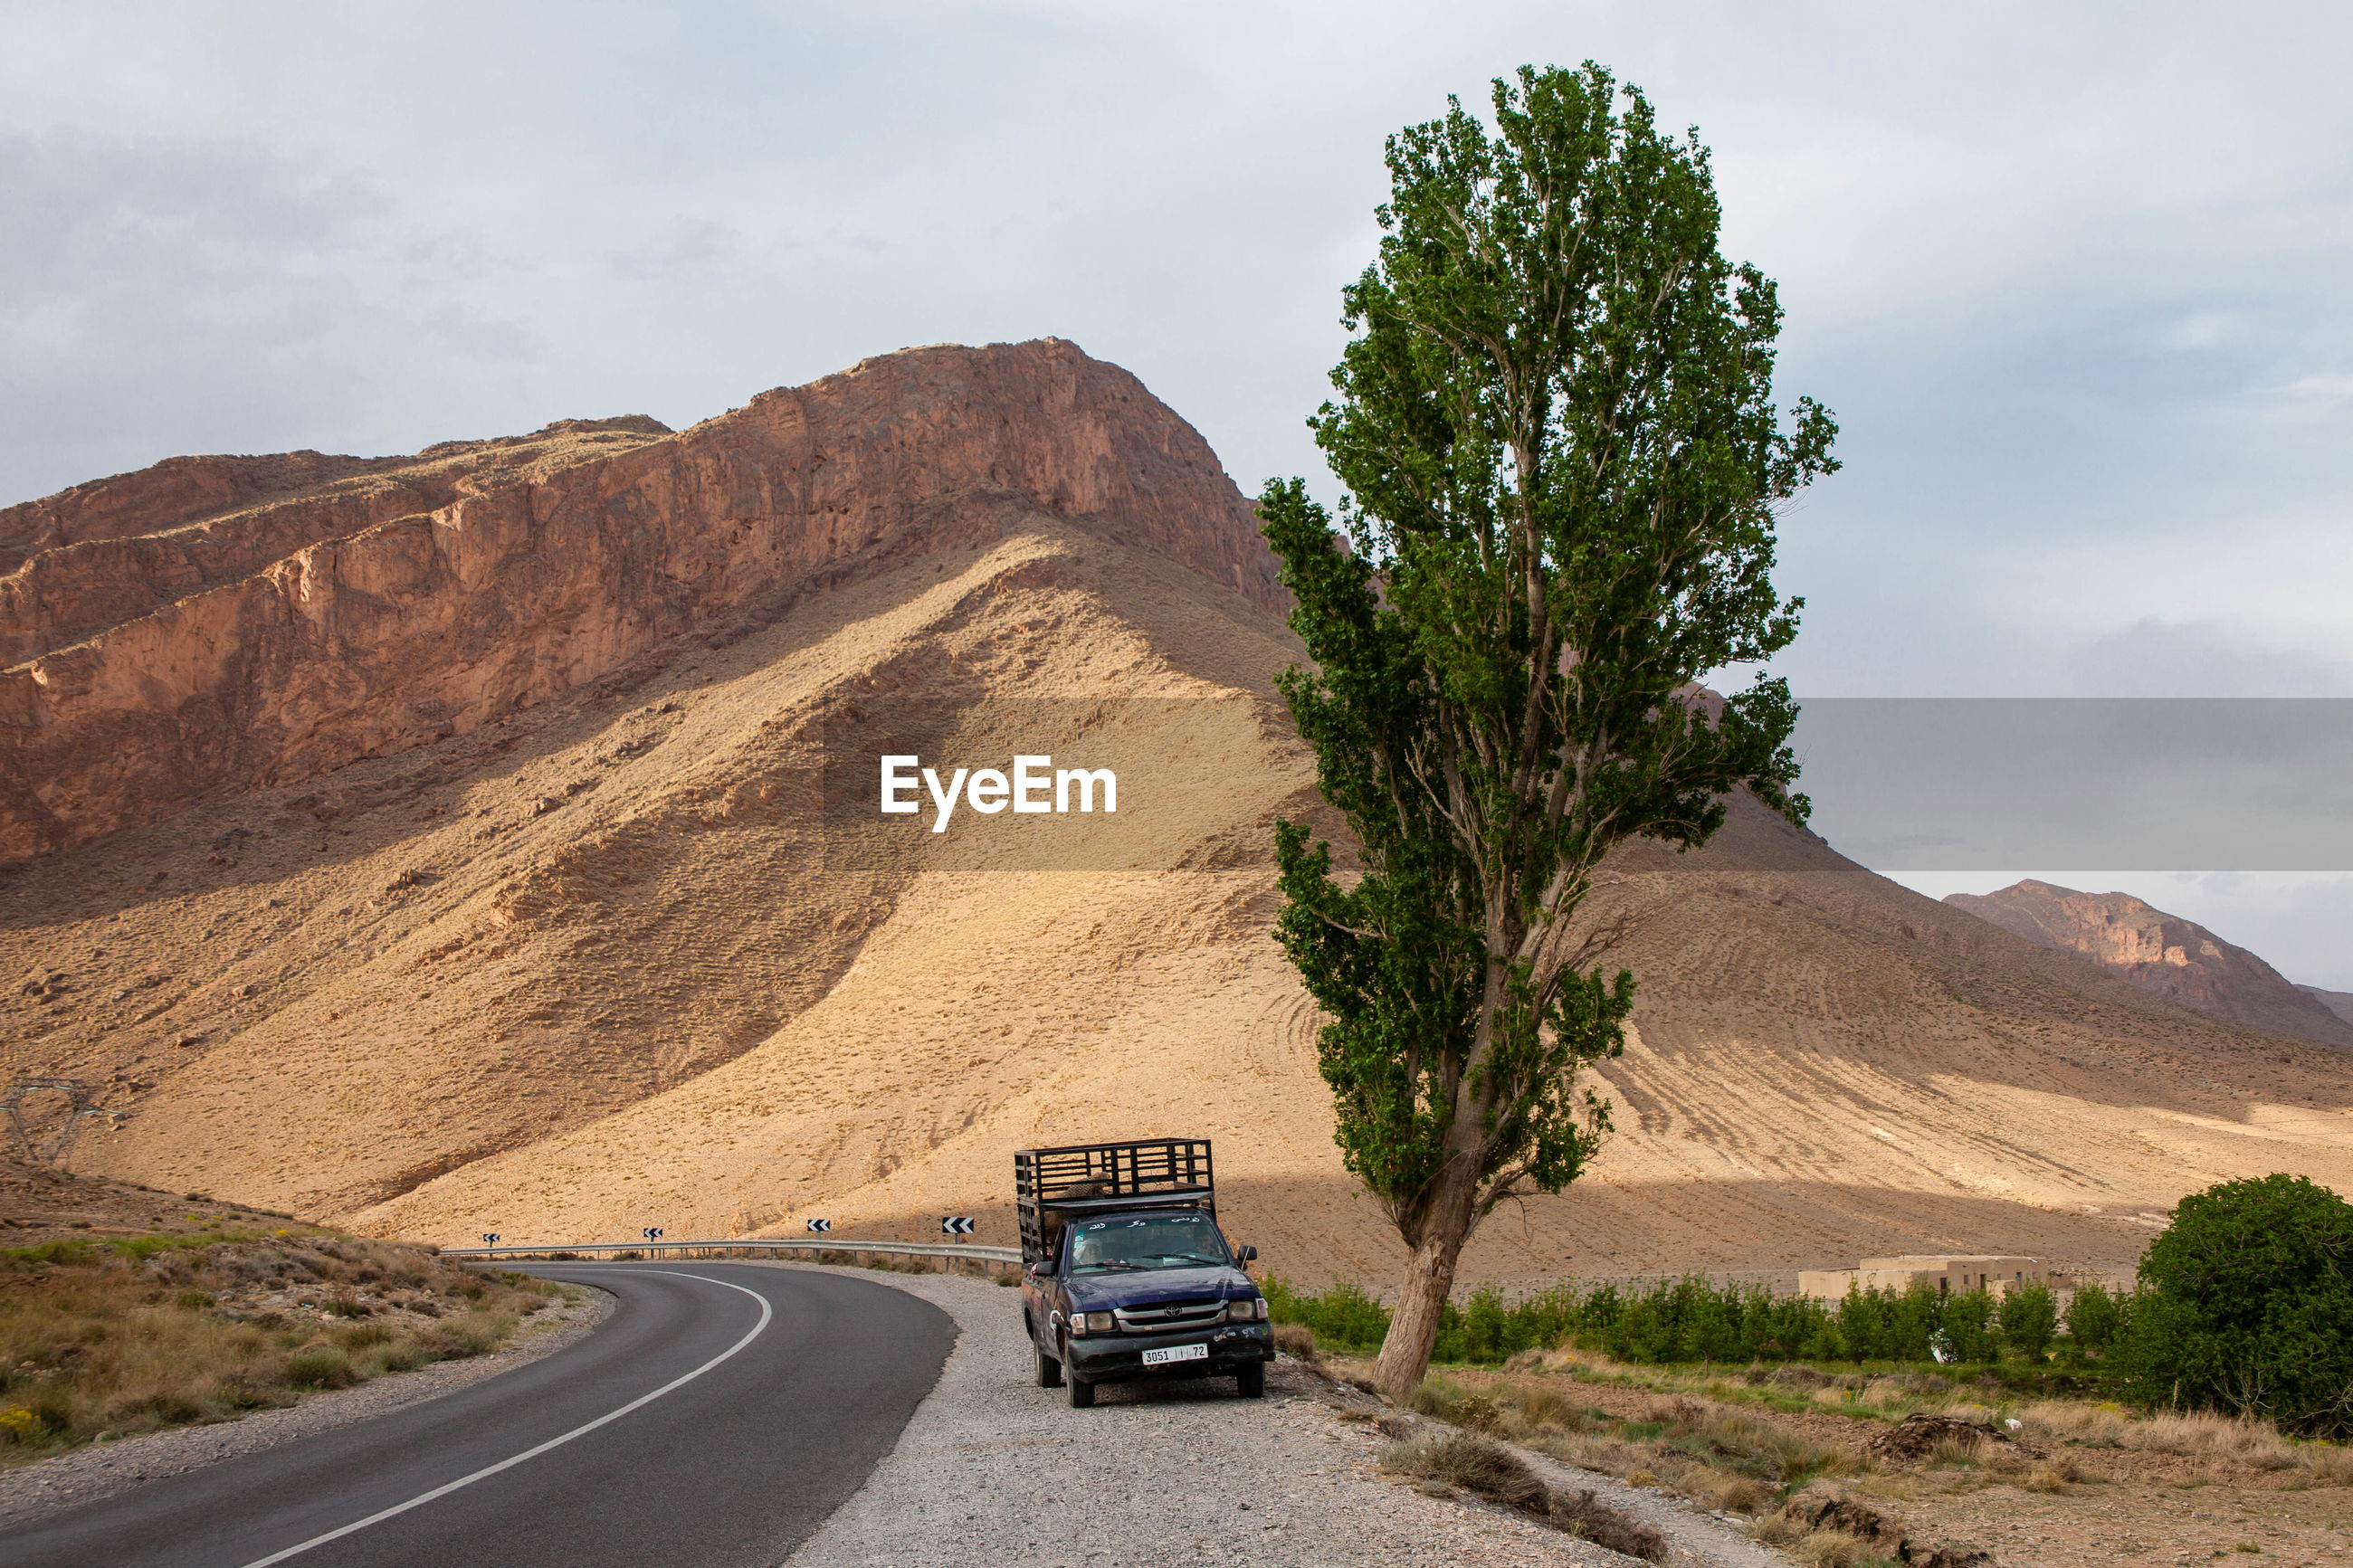 VEHICLES ON ROAD BY MOUNTAINS AGAINST SKY